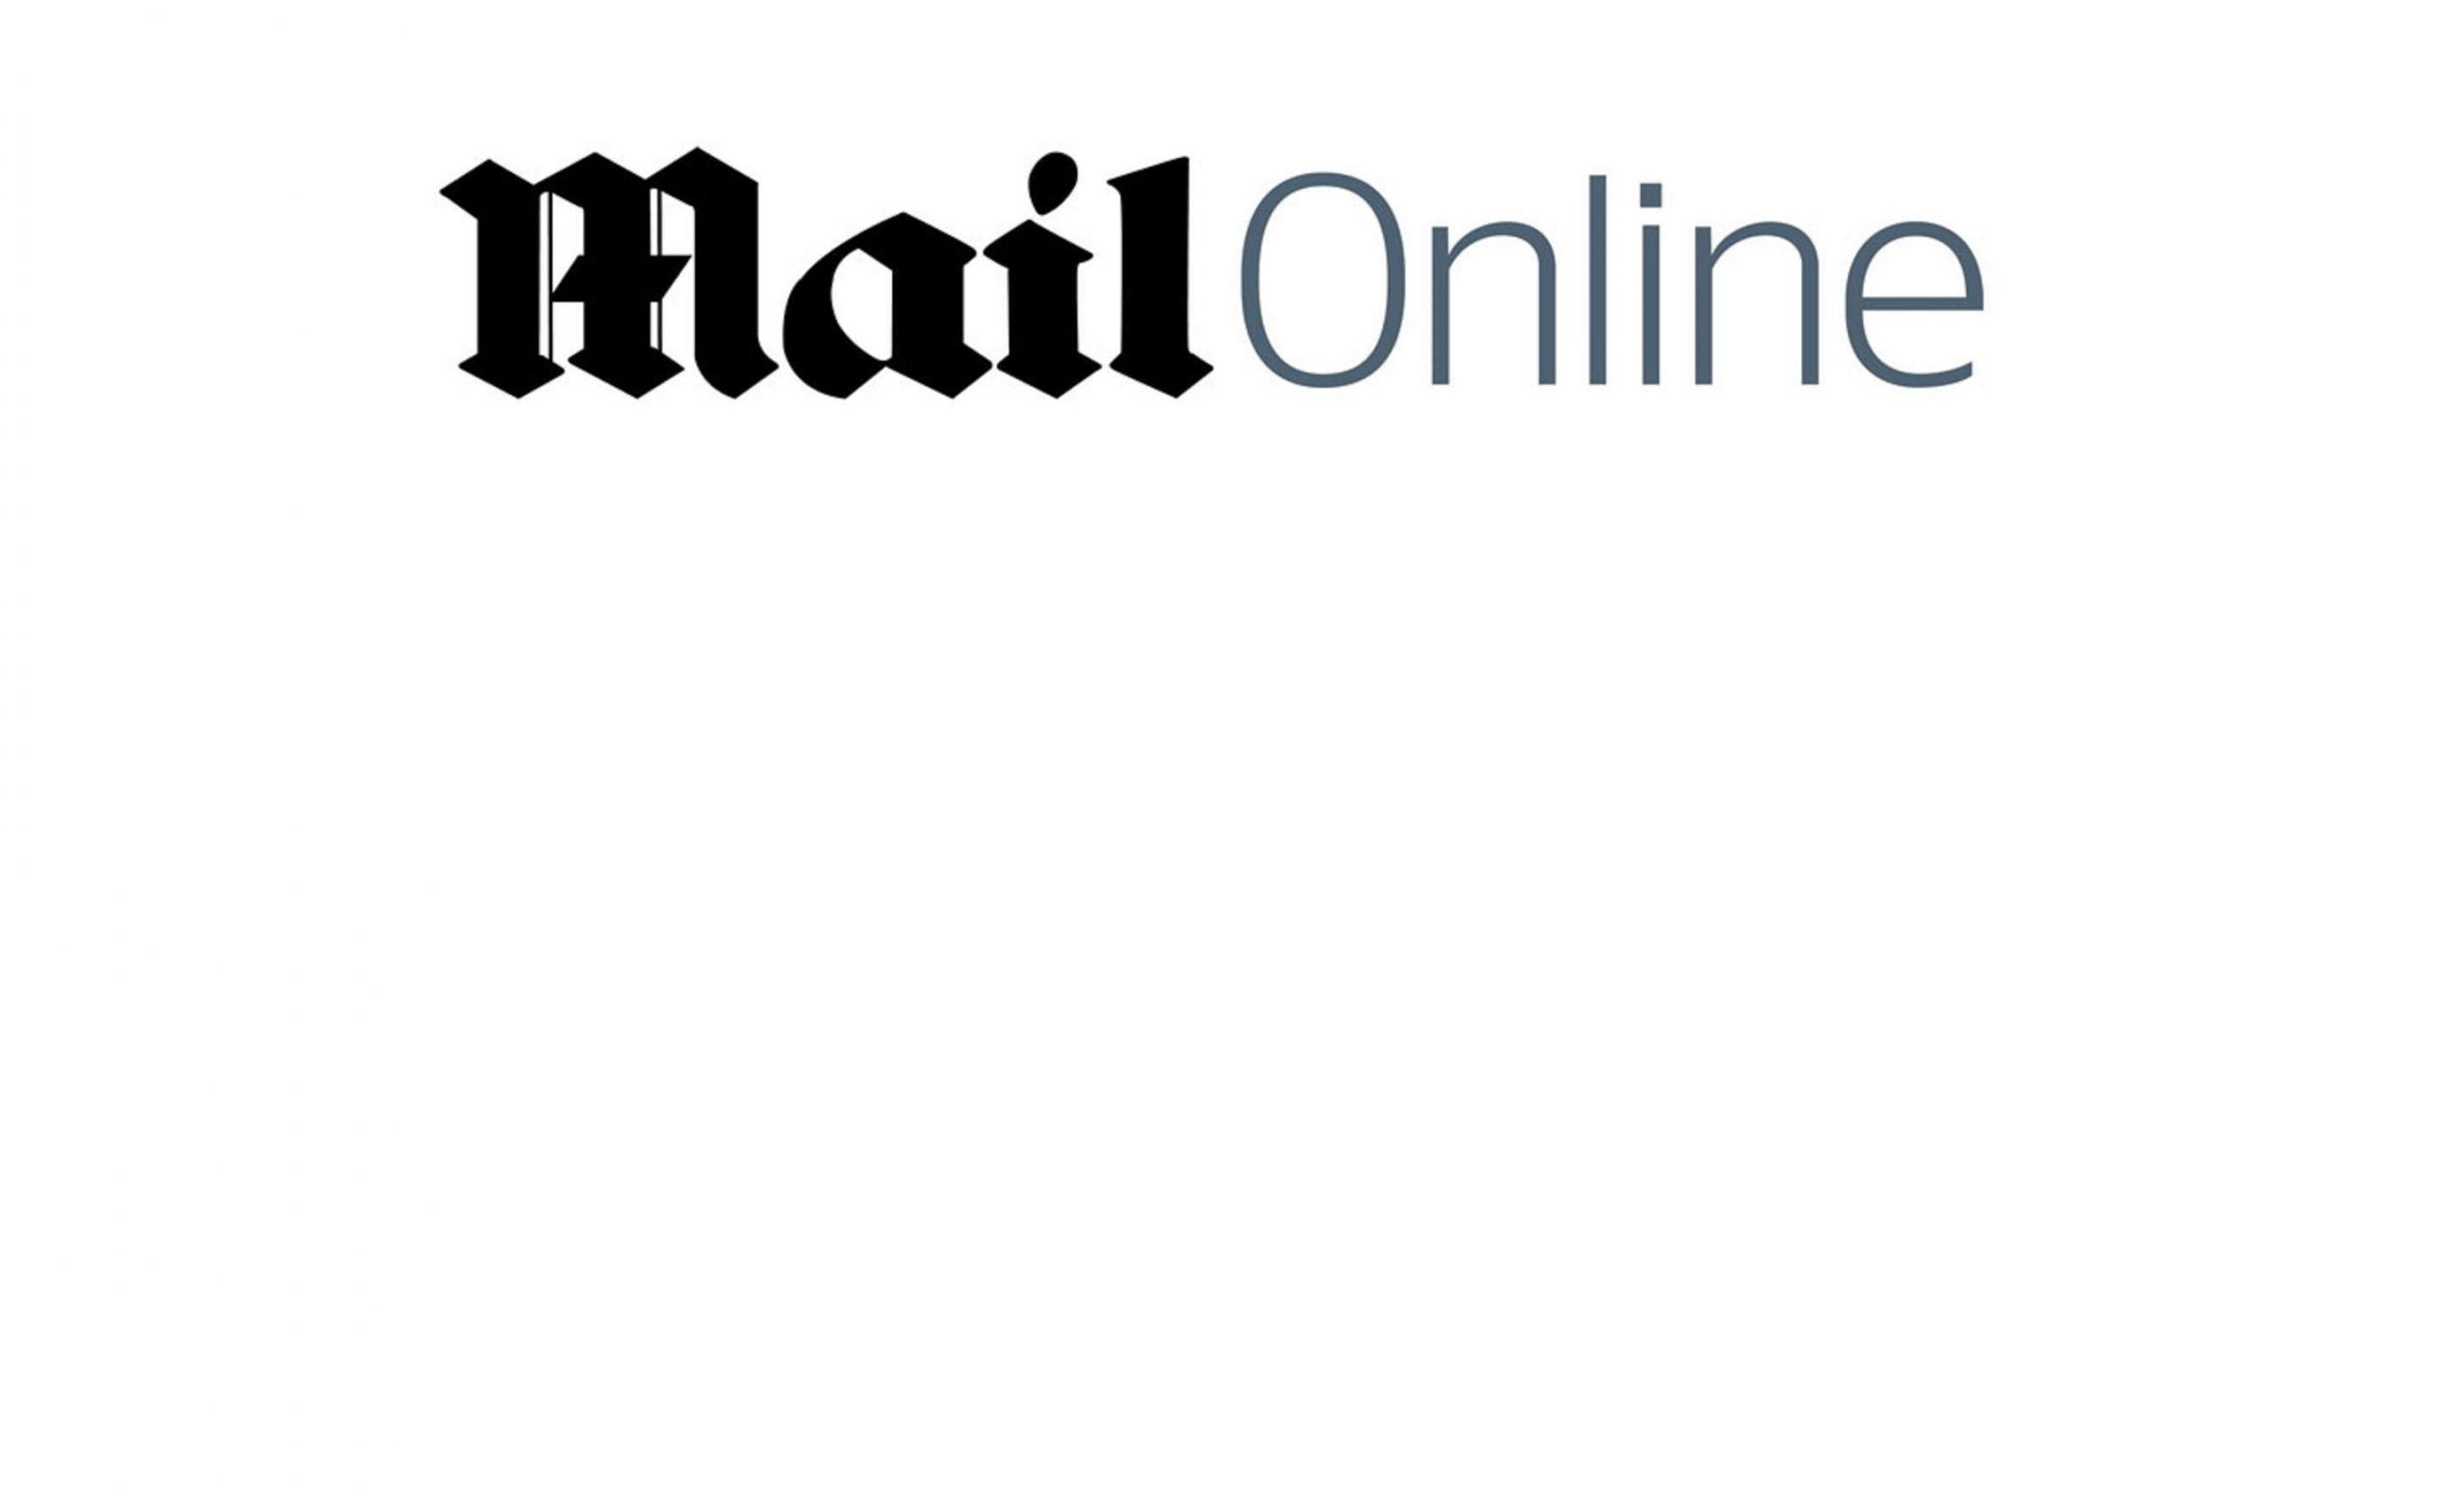 What it's like to fall victim to the Mail Online's aggregation machine